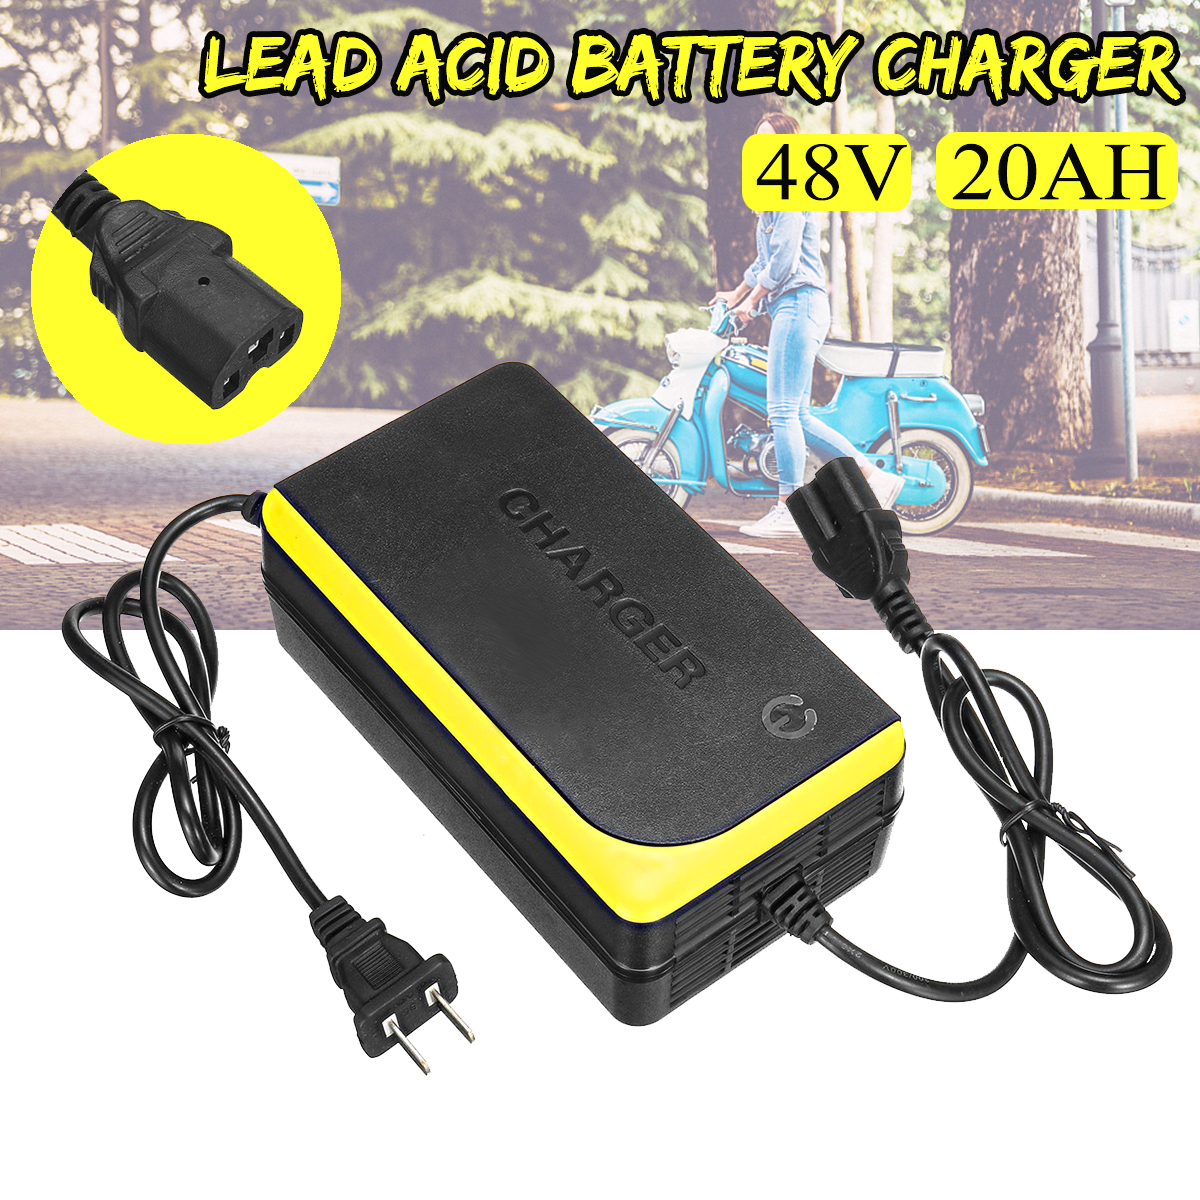 48V 20Ah Battery Charger Electric Motorcycle Lead Acid Battery Charging Equipment